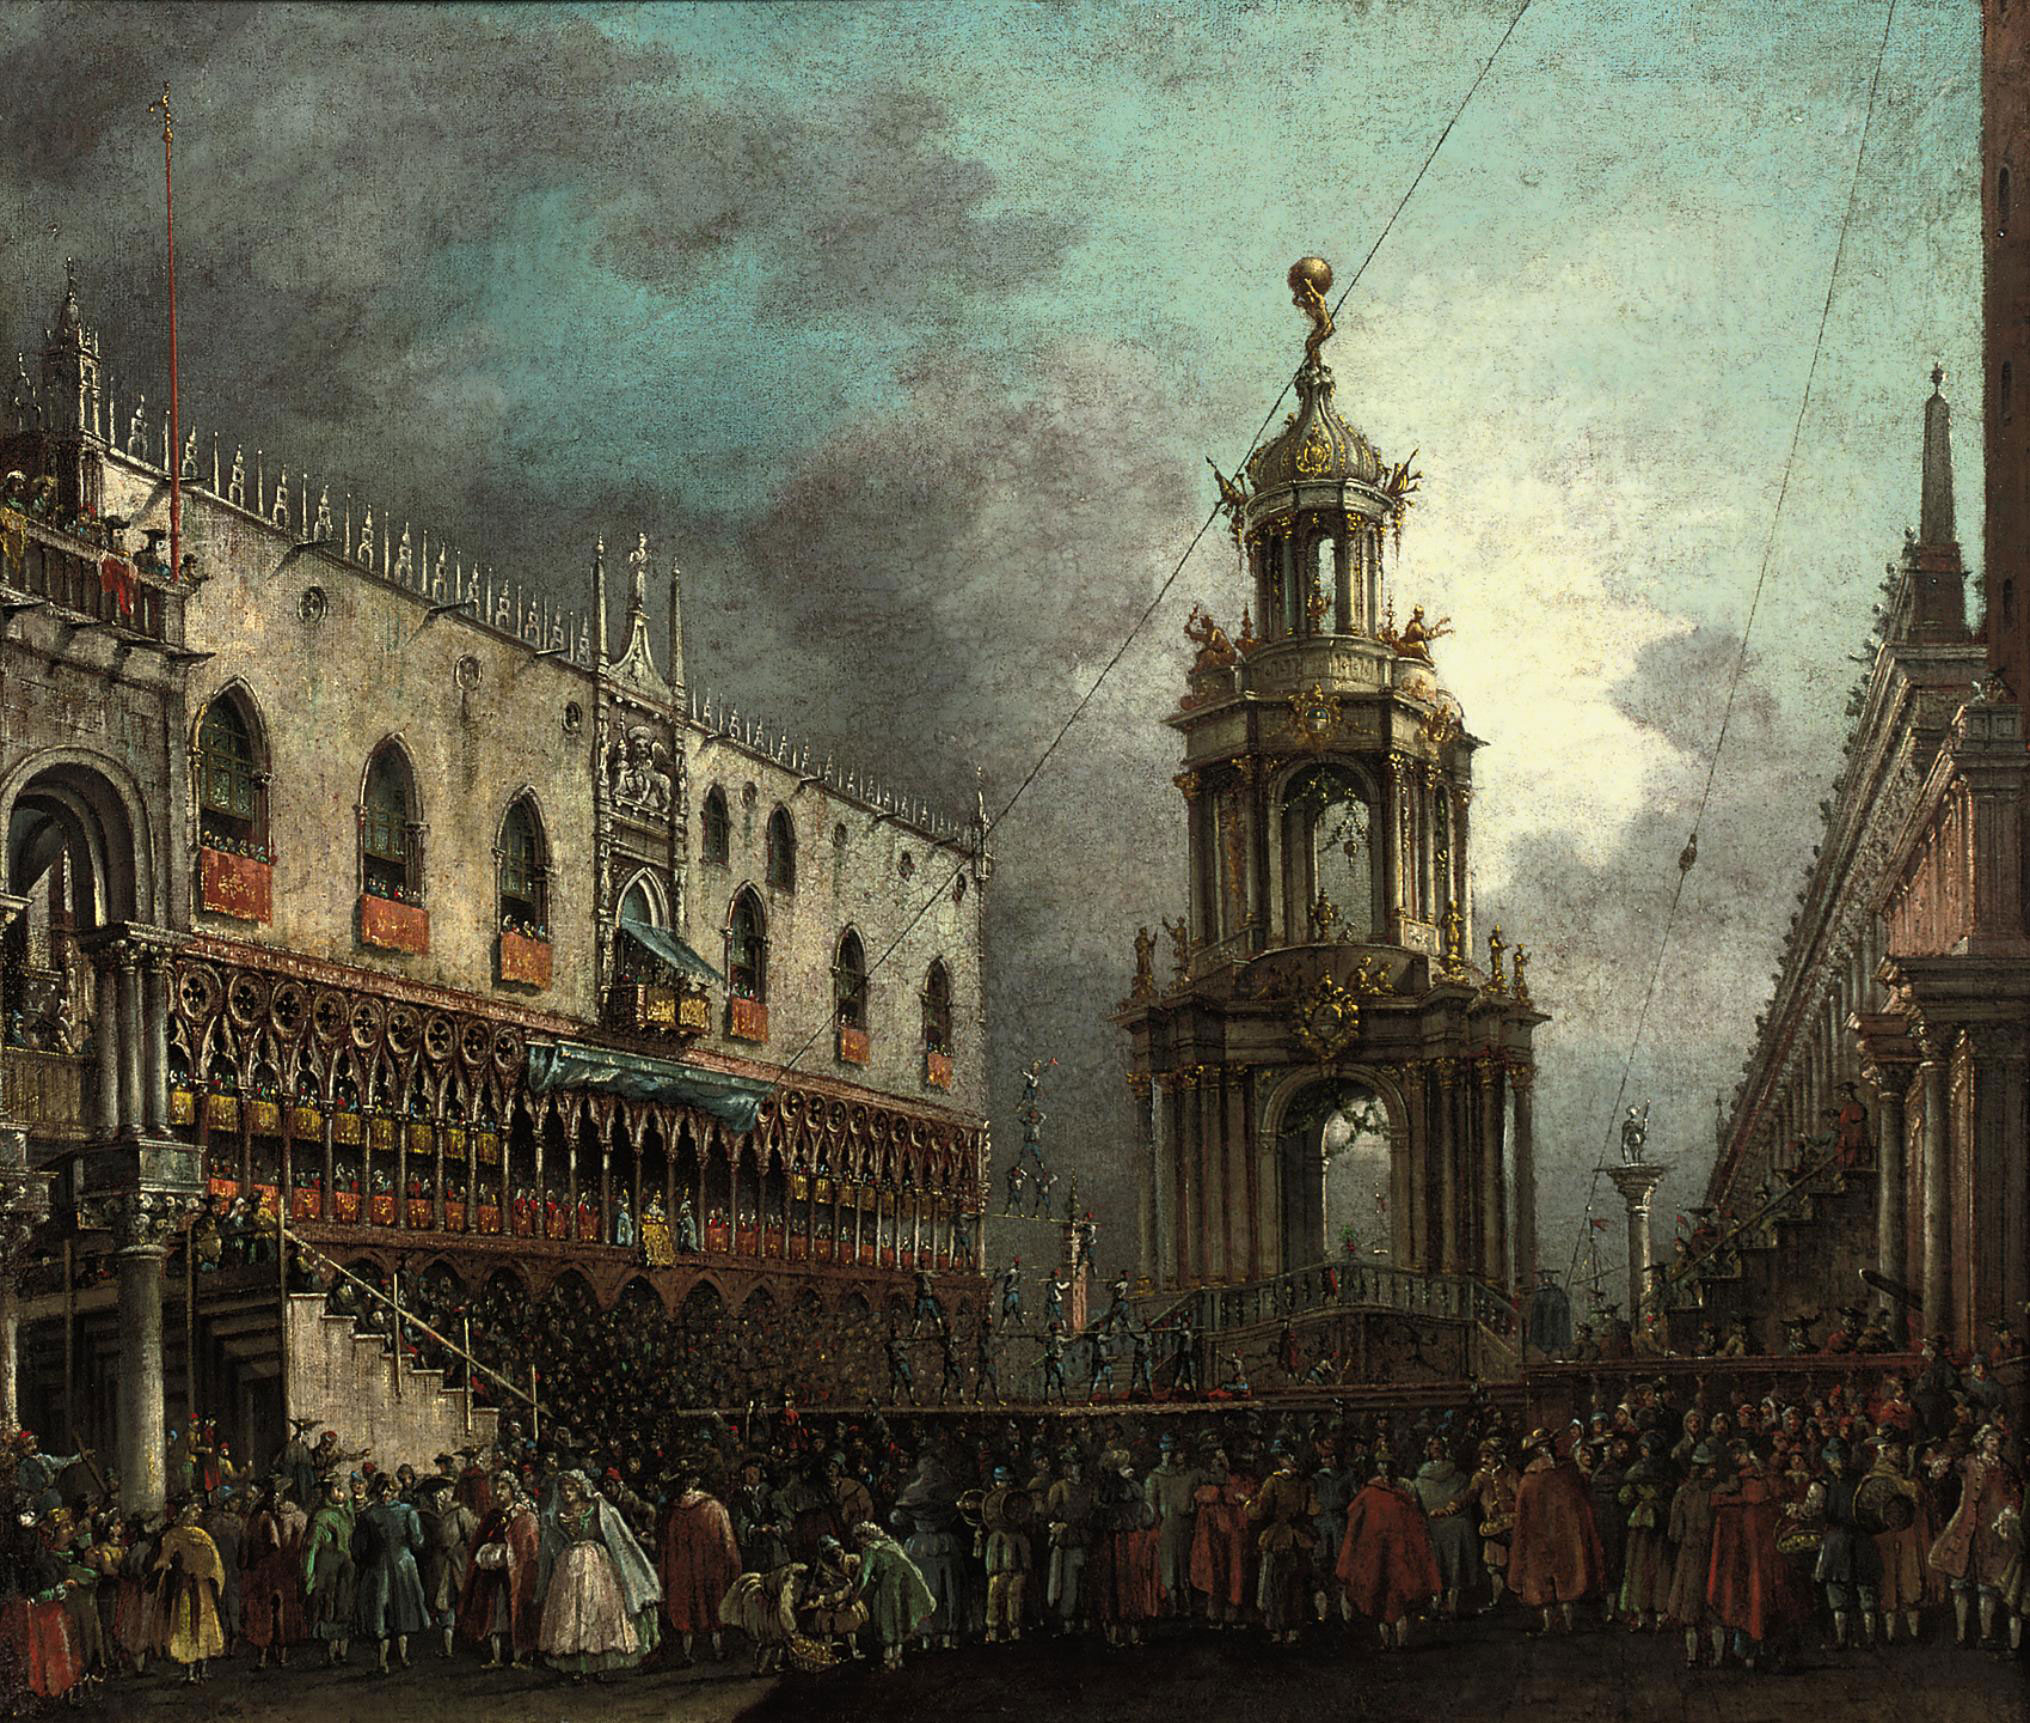 The 'Giovedi Grasso' festival on the Piazzetta in Venice